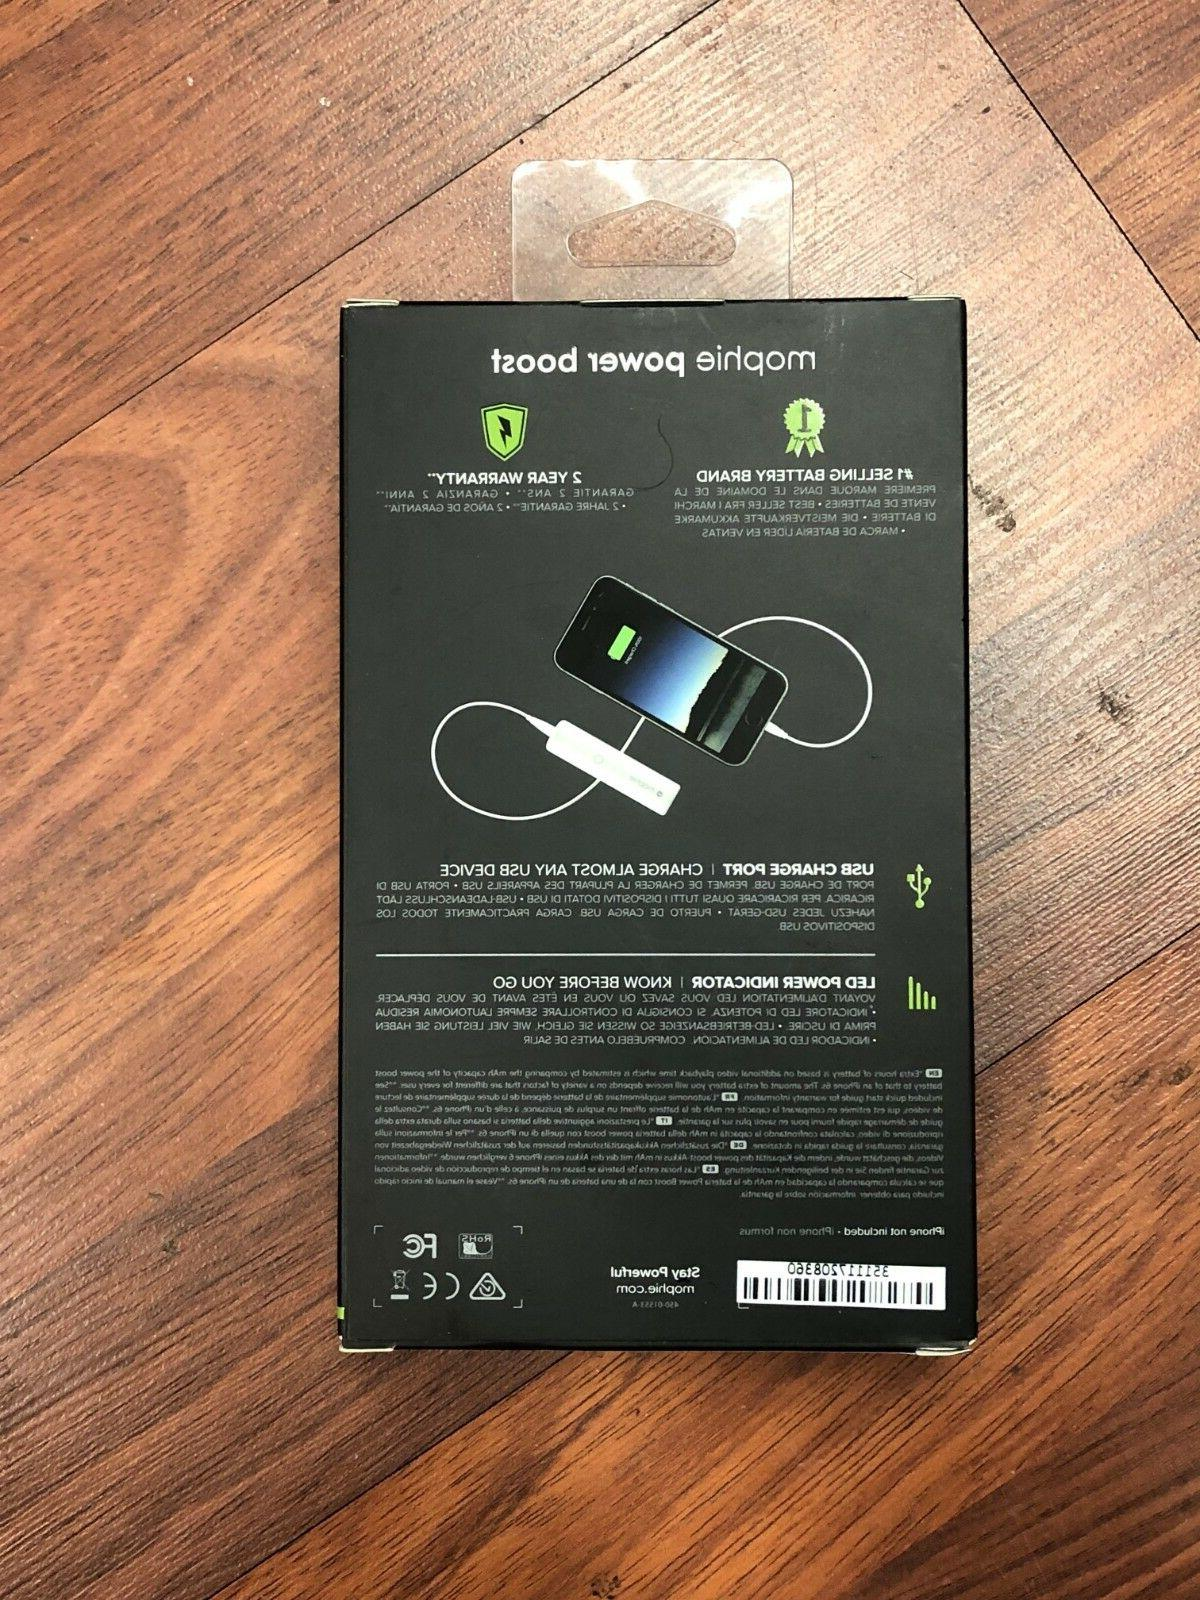 Mophie Power Boost in